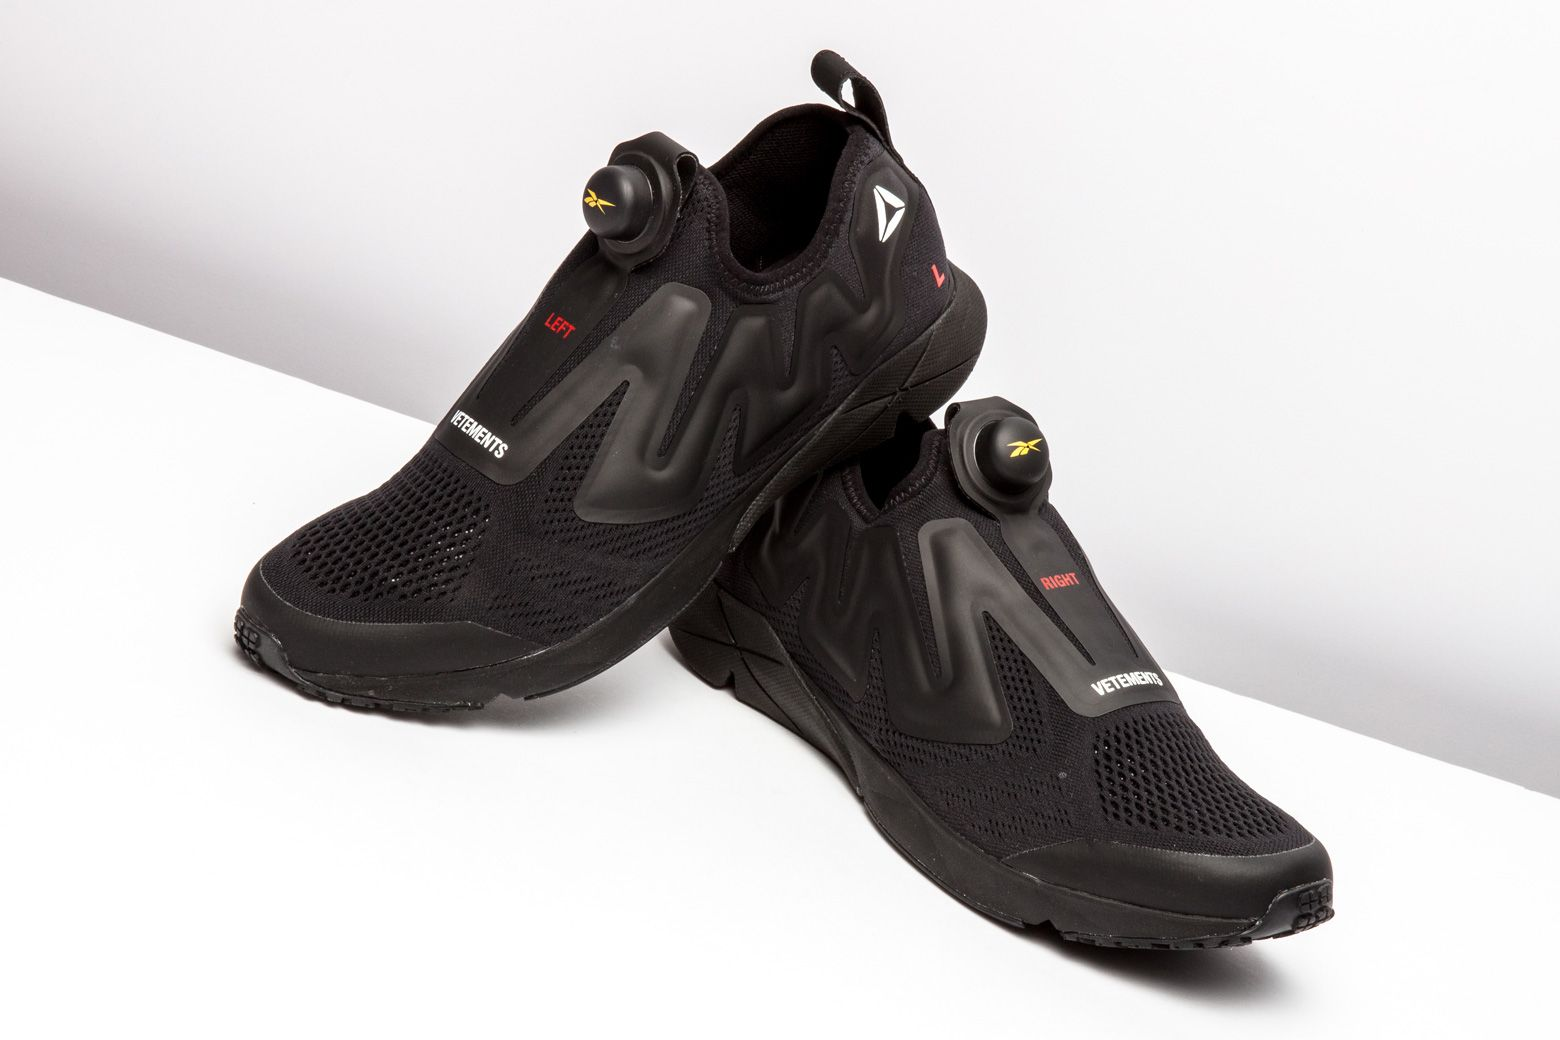 buy online 831d1 cd7e5 Peep this murdered-out version of the Vetements x Reebok Pump Supreme. http